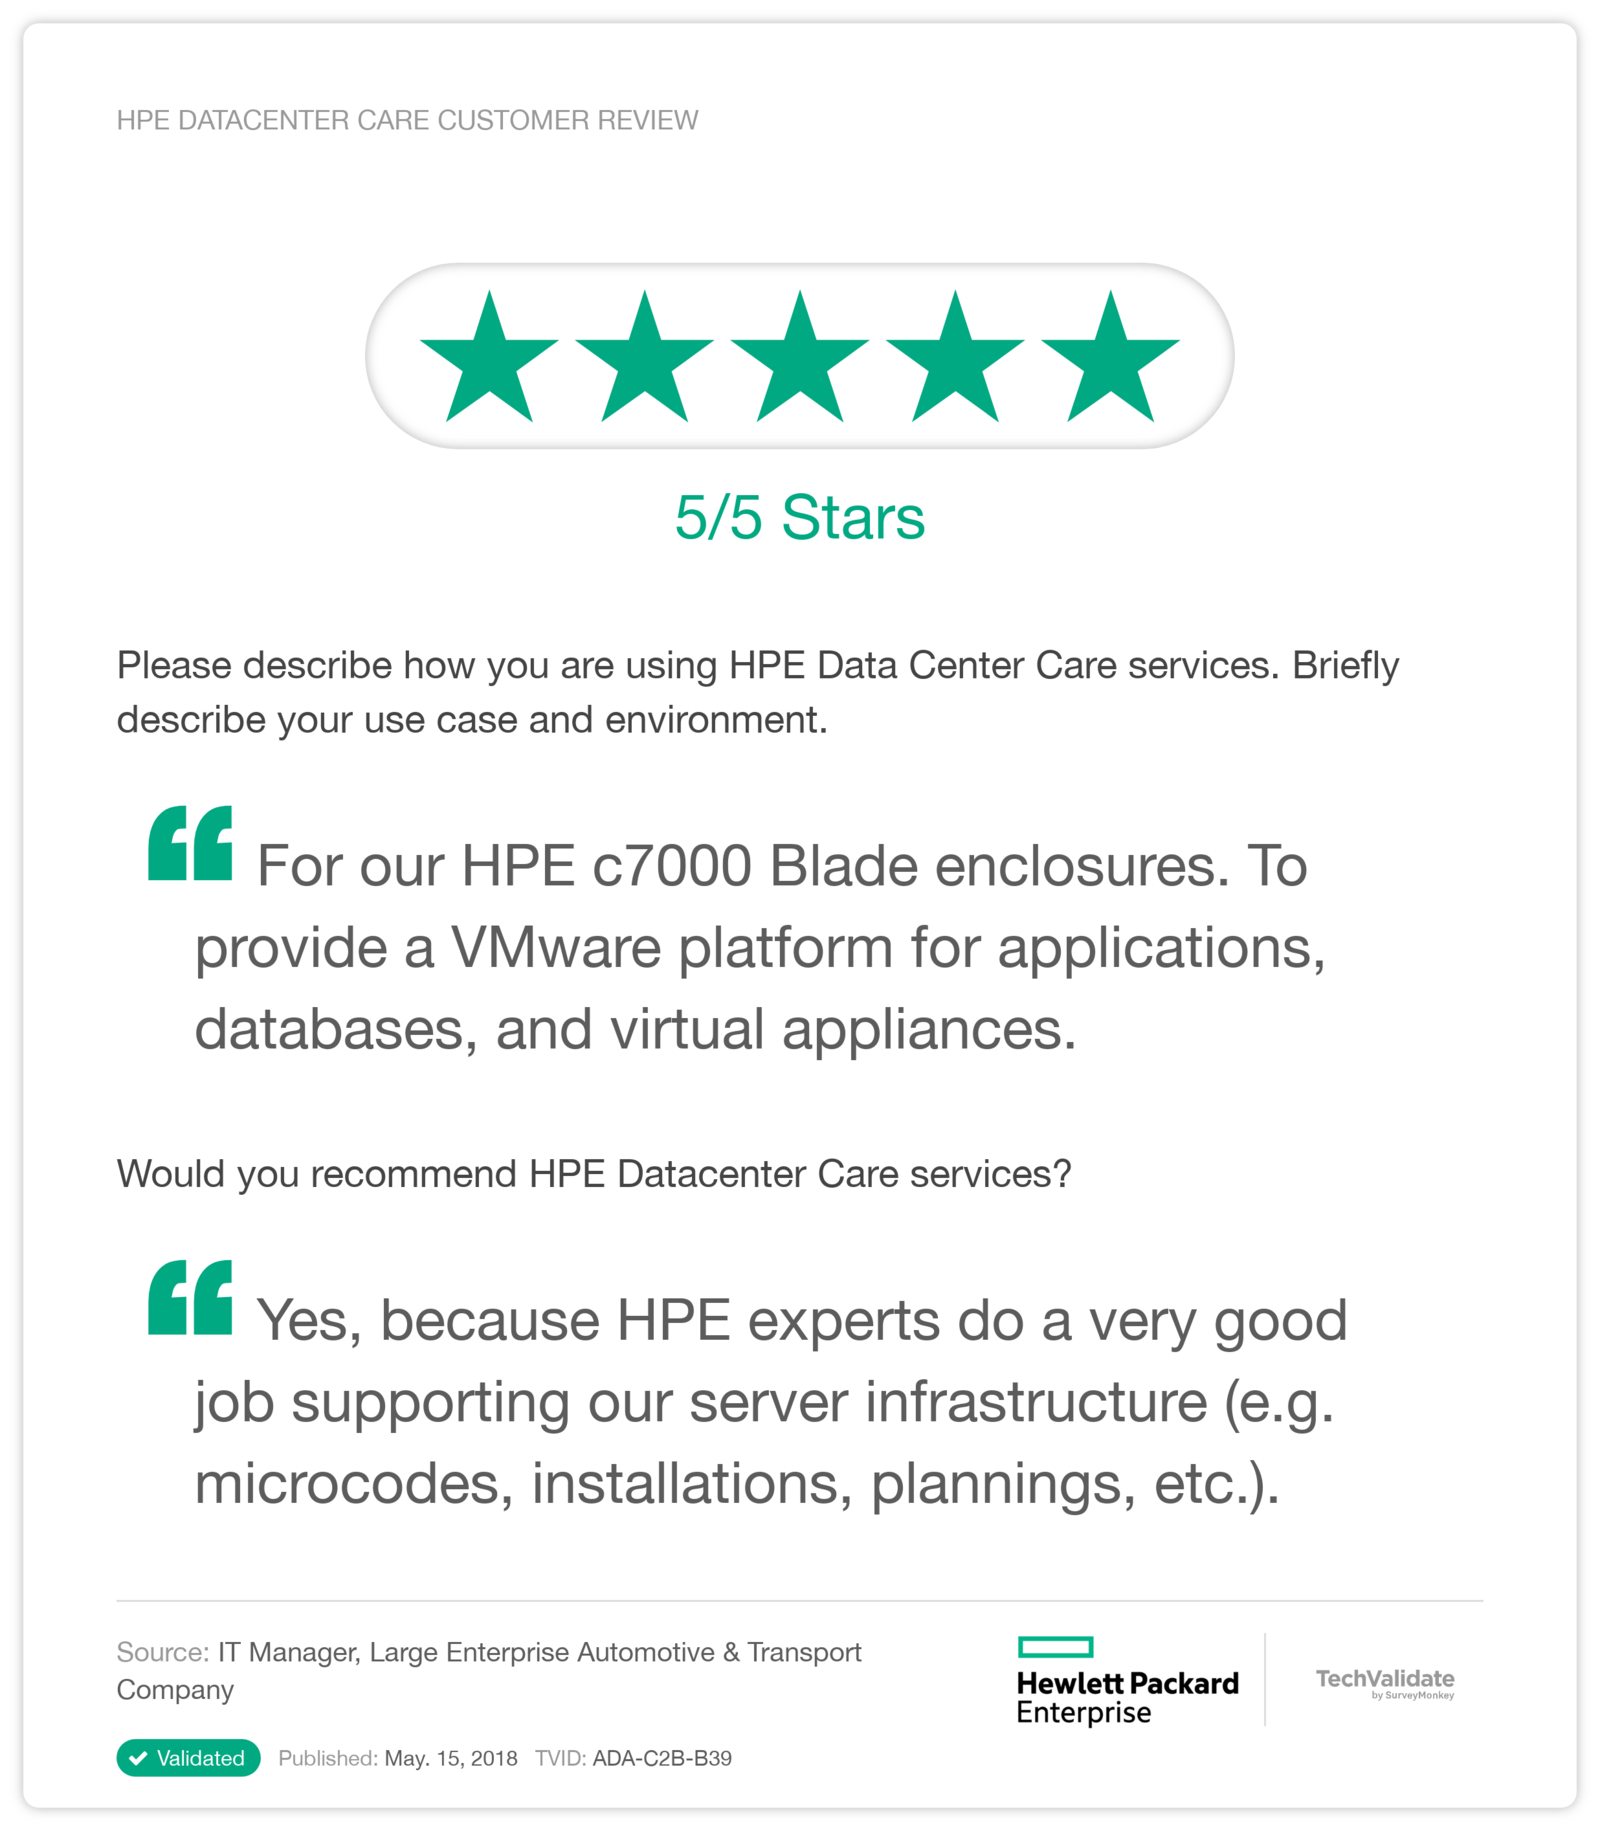 HPE Datacenter Care Customer Review